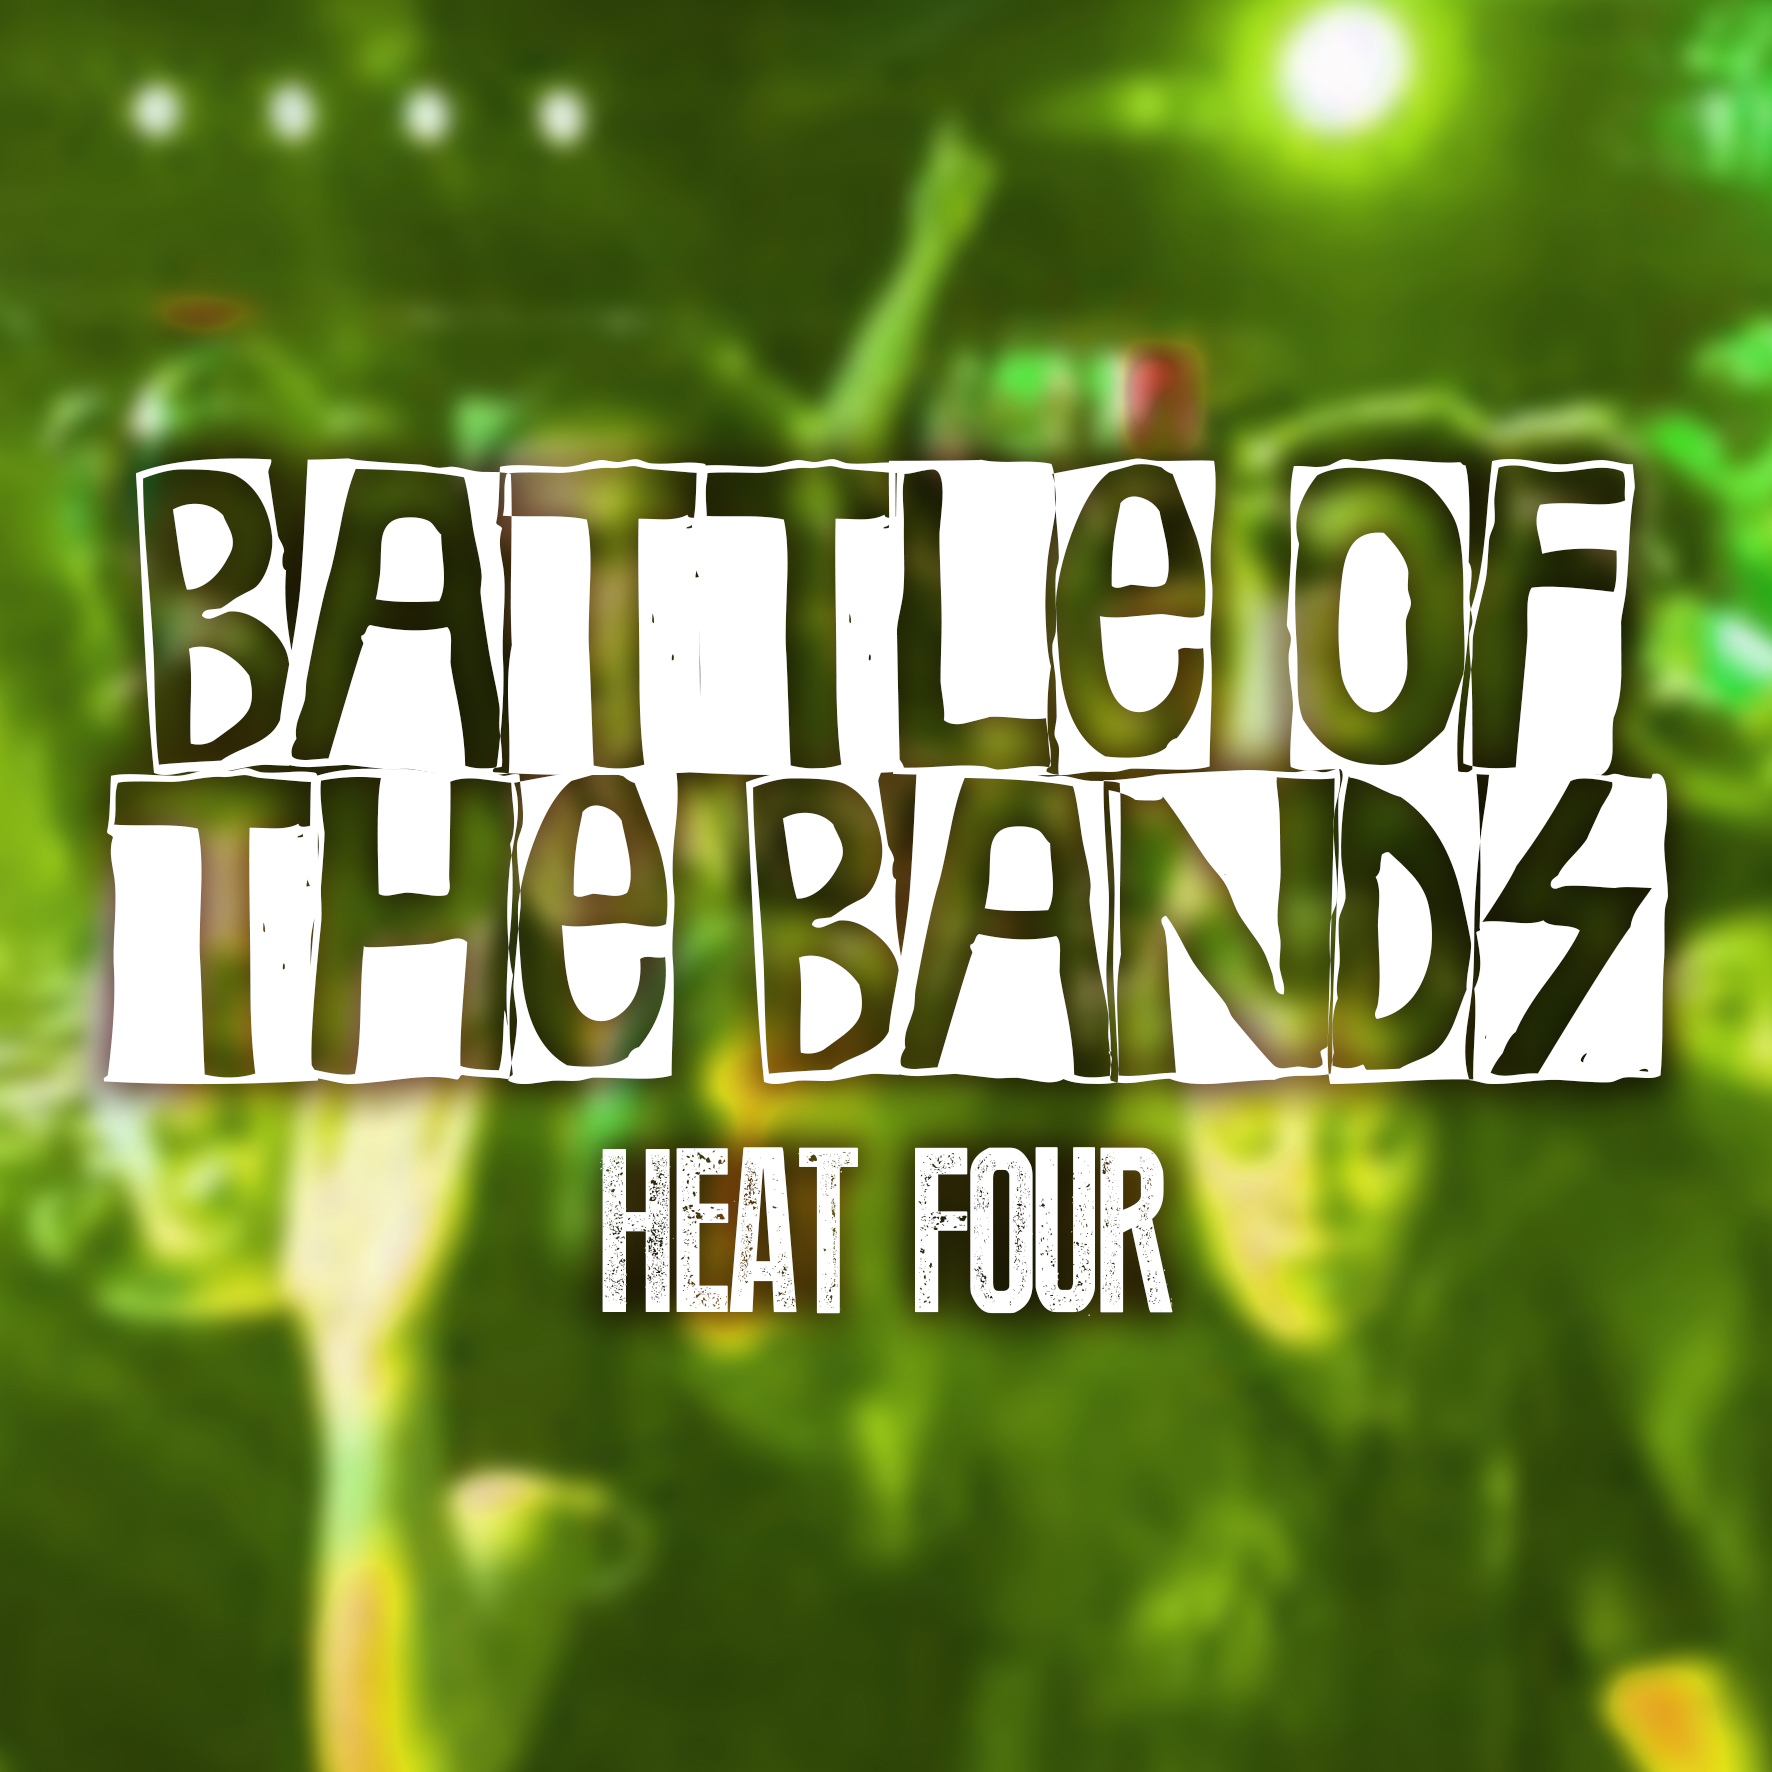 BATTLE OF THE BANDS Heat 4 - UK:ID / BADOW / SWITCH VIOLET / LESSER KNOWN CHARACTER